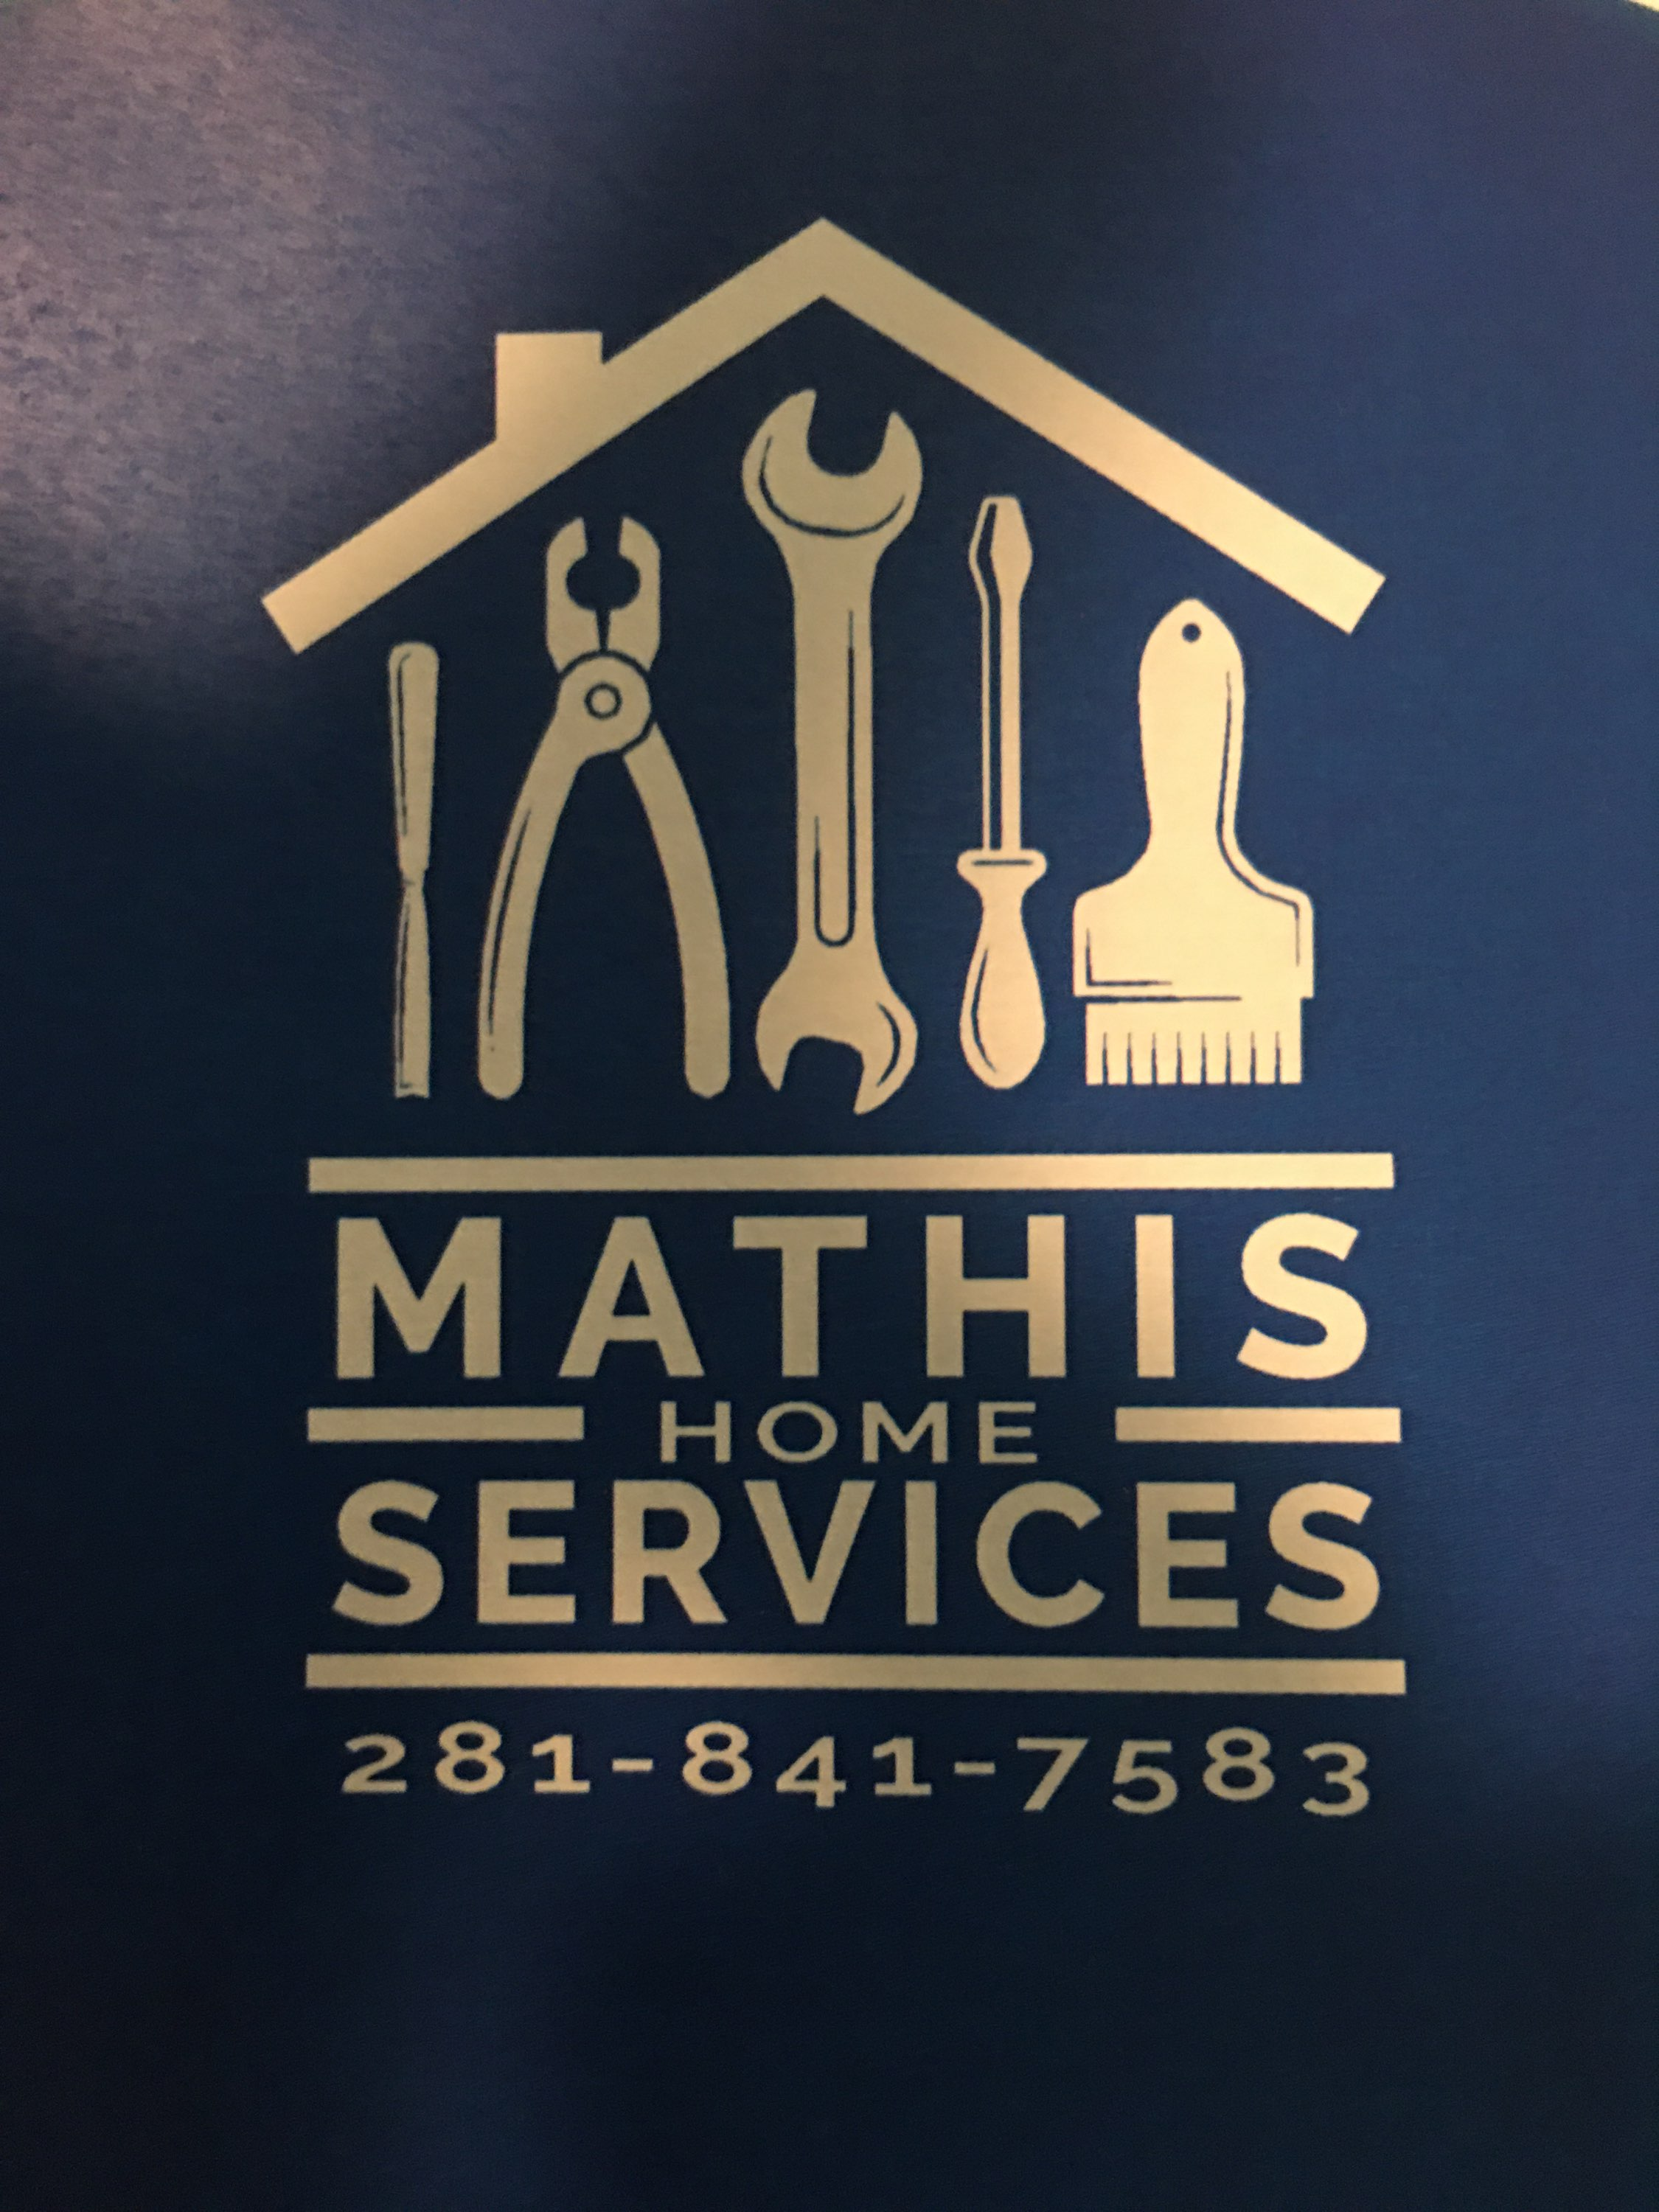 Mathis Home Services logo